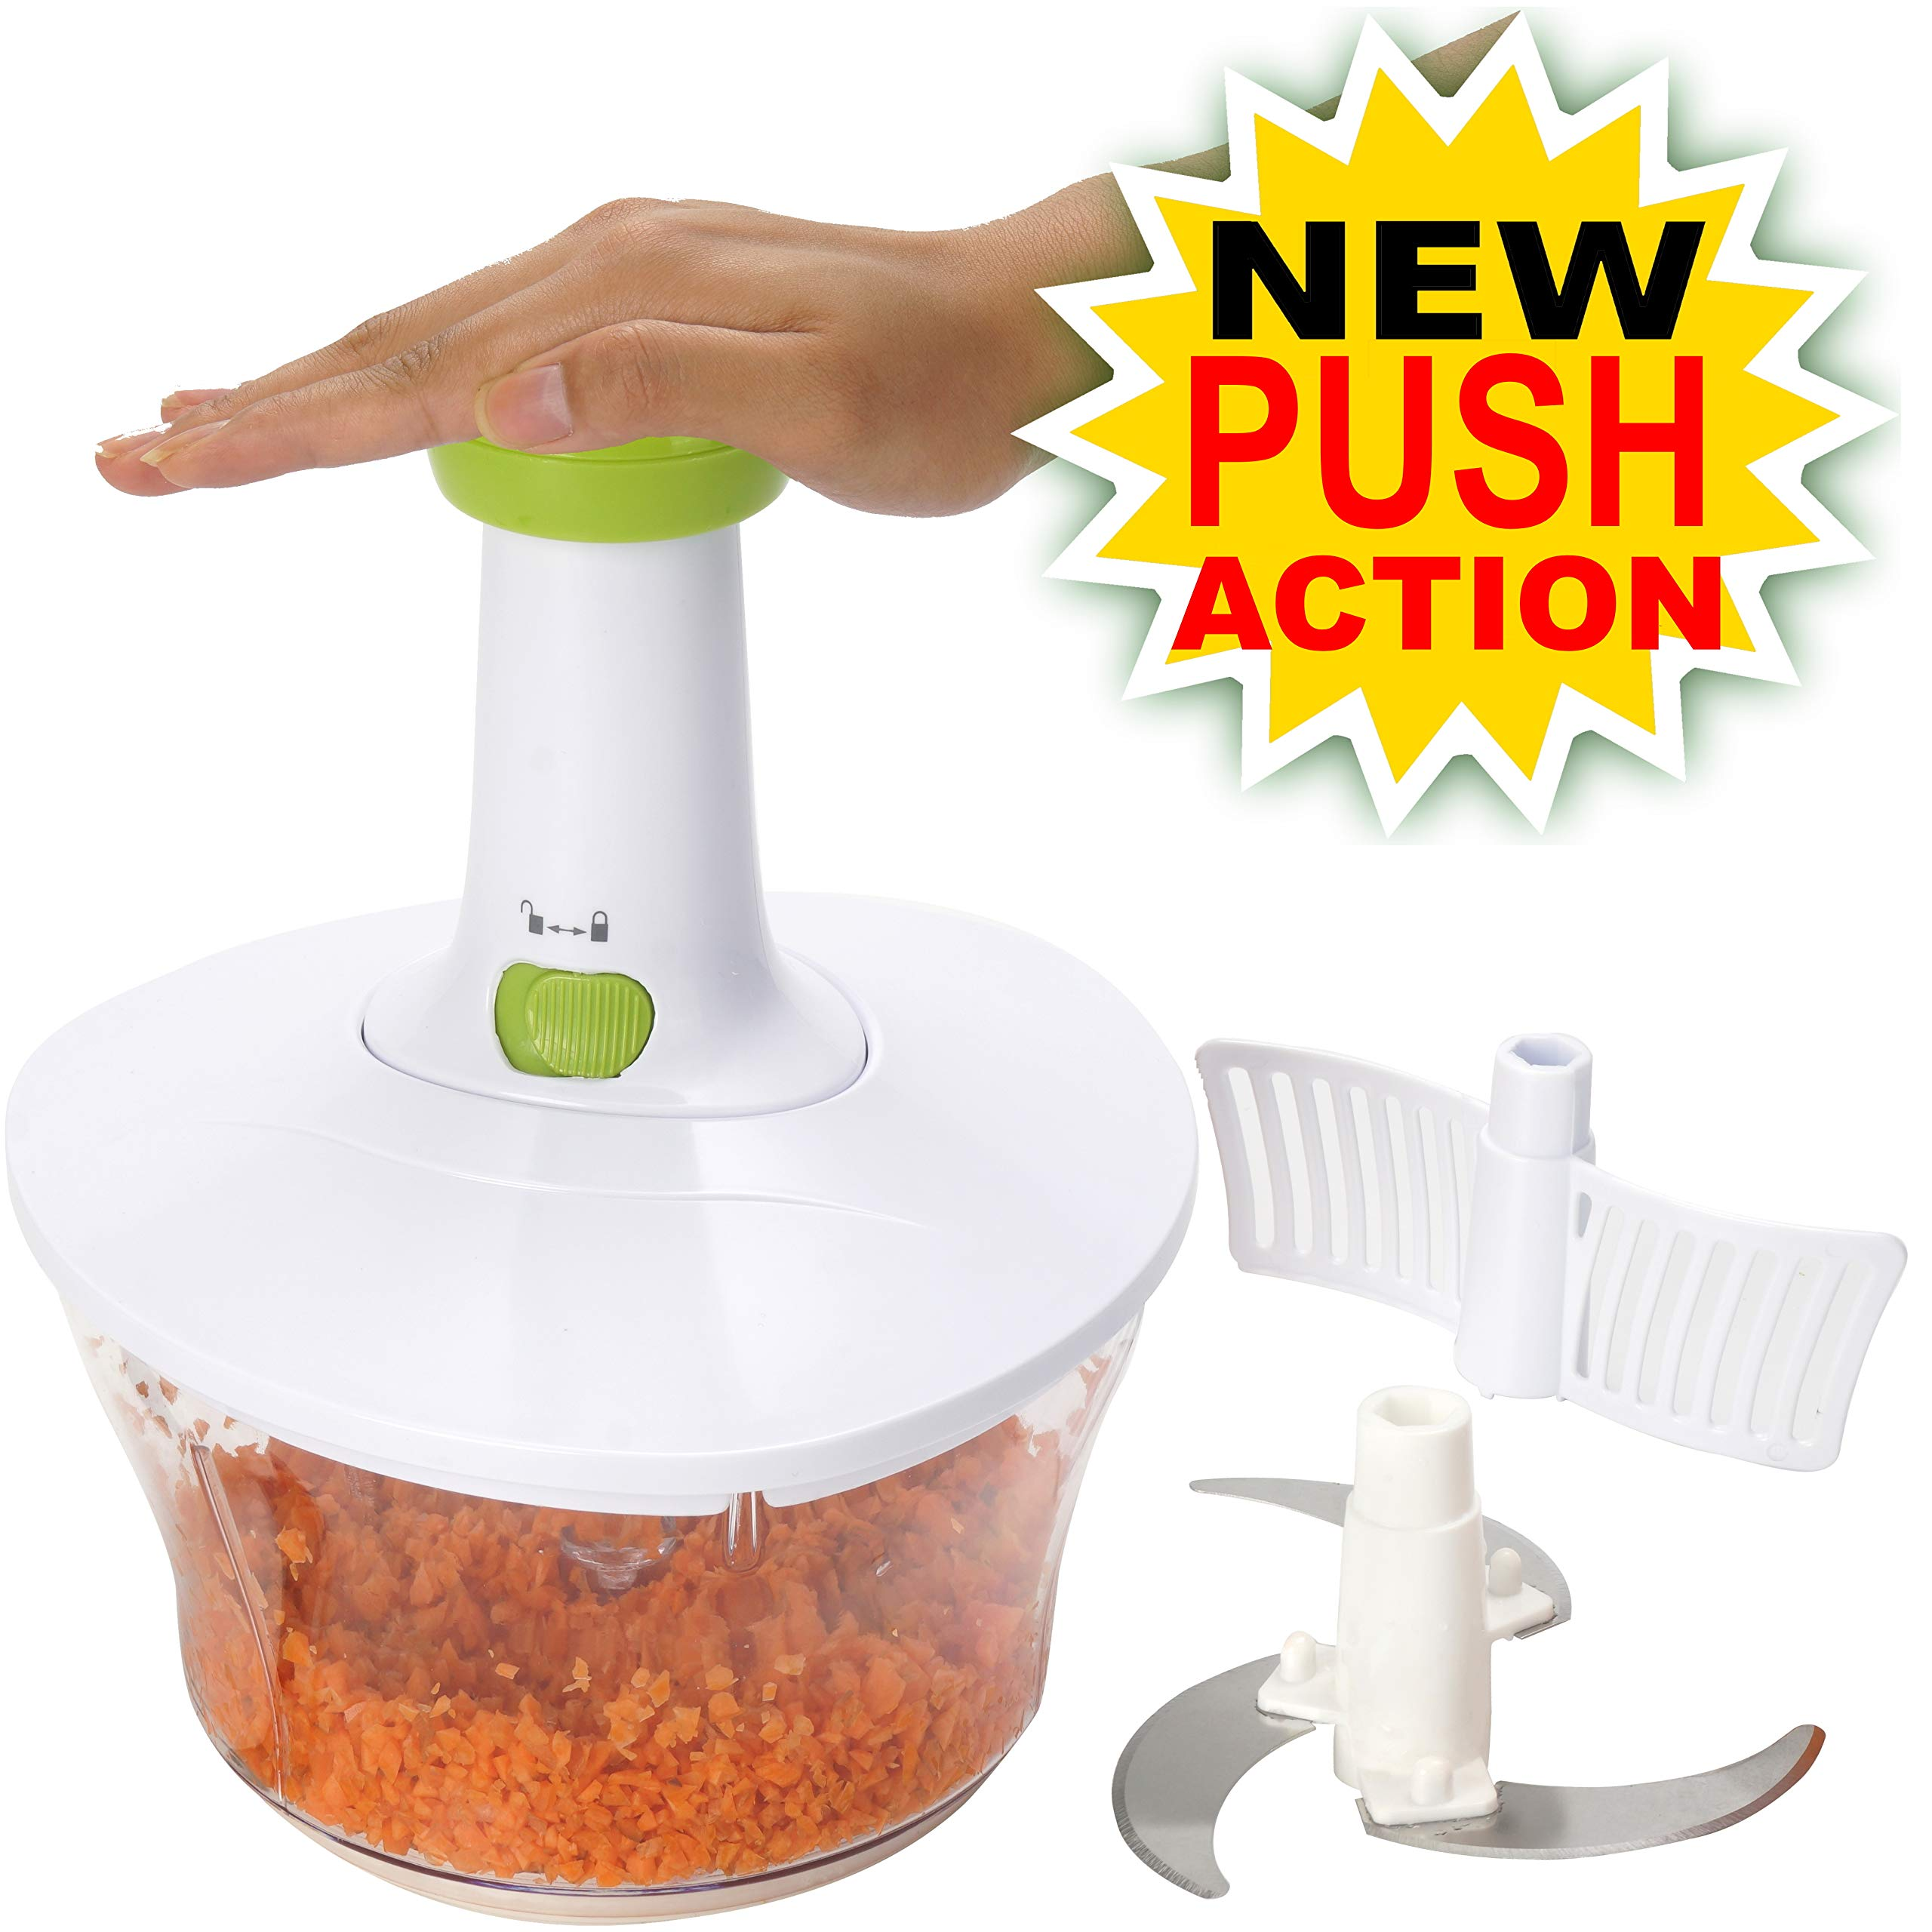 Brieftons Express Food Chopper: Large 6.8-Cup, Quick & Powerful Manual Hand Held Chopper/Mixer to Chop Fruits, Vegetables, Herbs, Onions for Salsa, Salad, Pesto, Hummus, Guacamole, Coleslaw, Puree by Brieftons